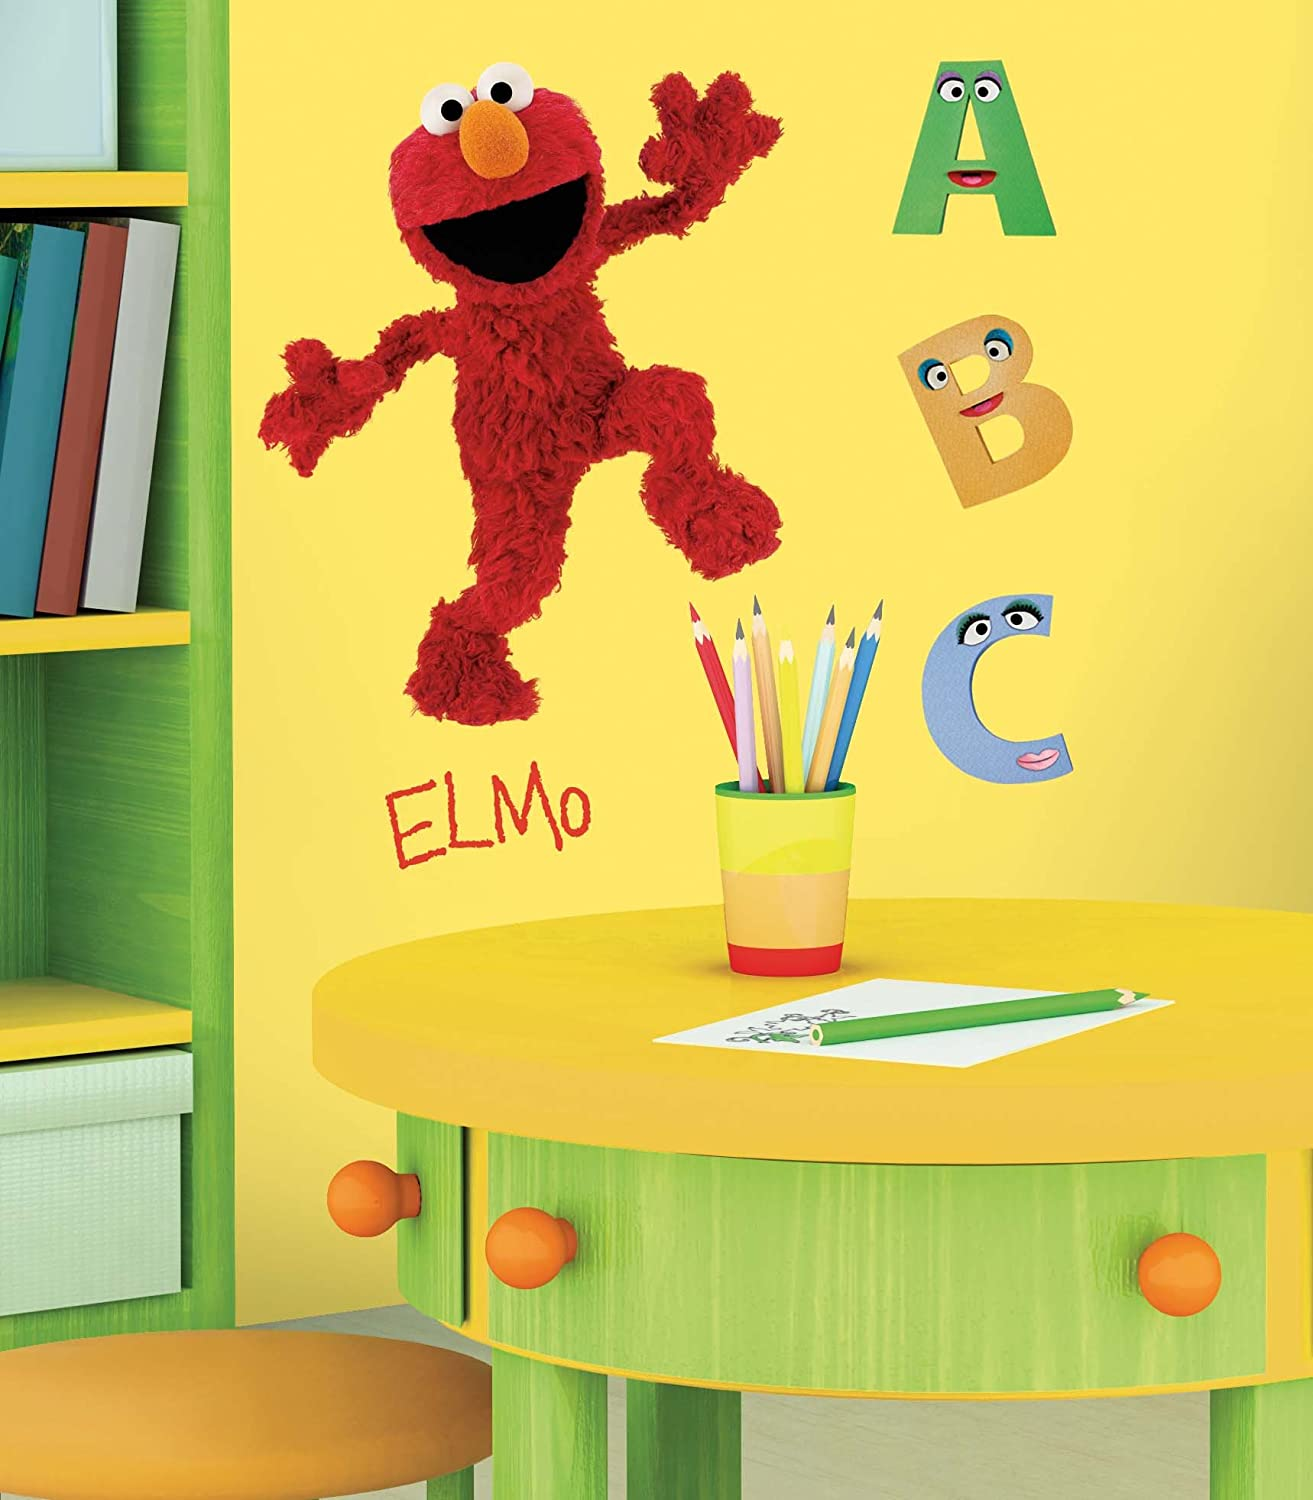 amazon com roommates rmk1482gm sesame street elmo peel stick amazon com roommates rmk1482gm sesame street elmo peel stick giant wall decal home improvement